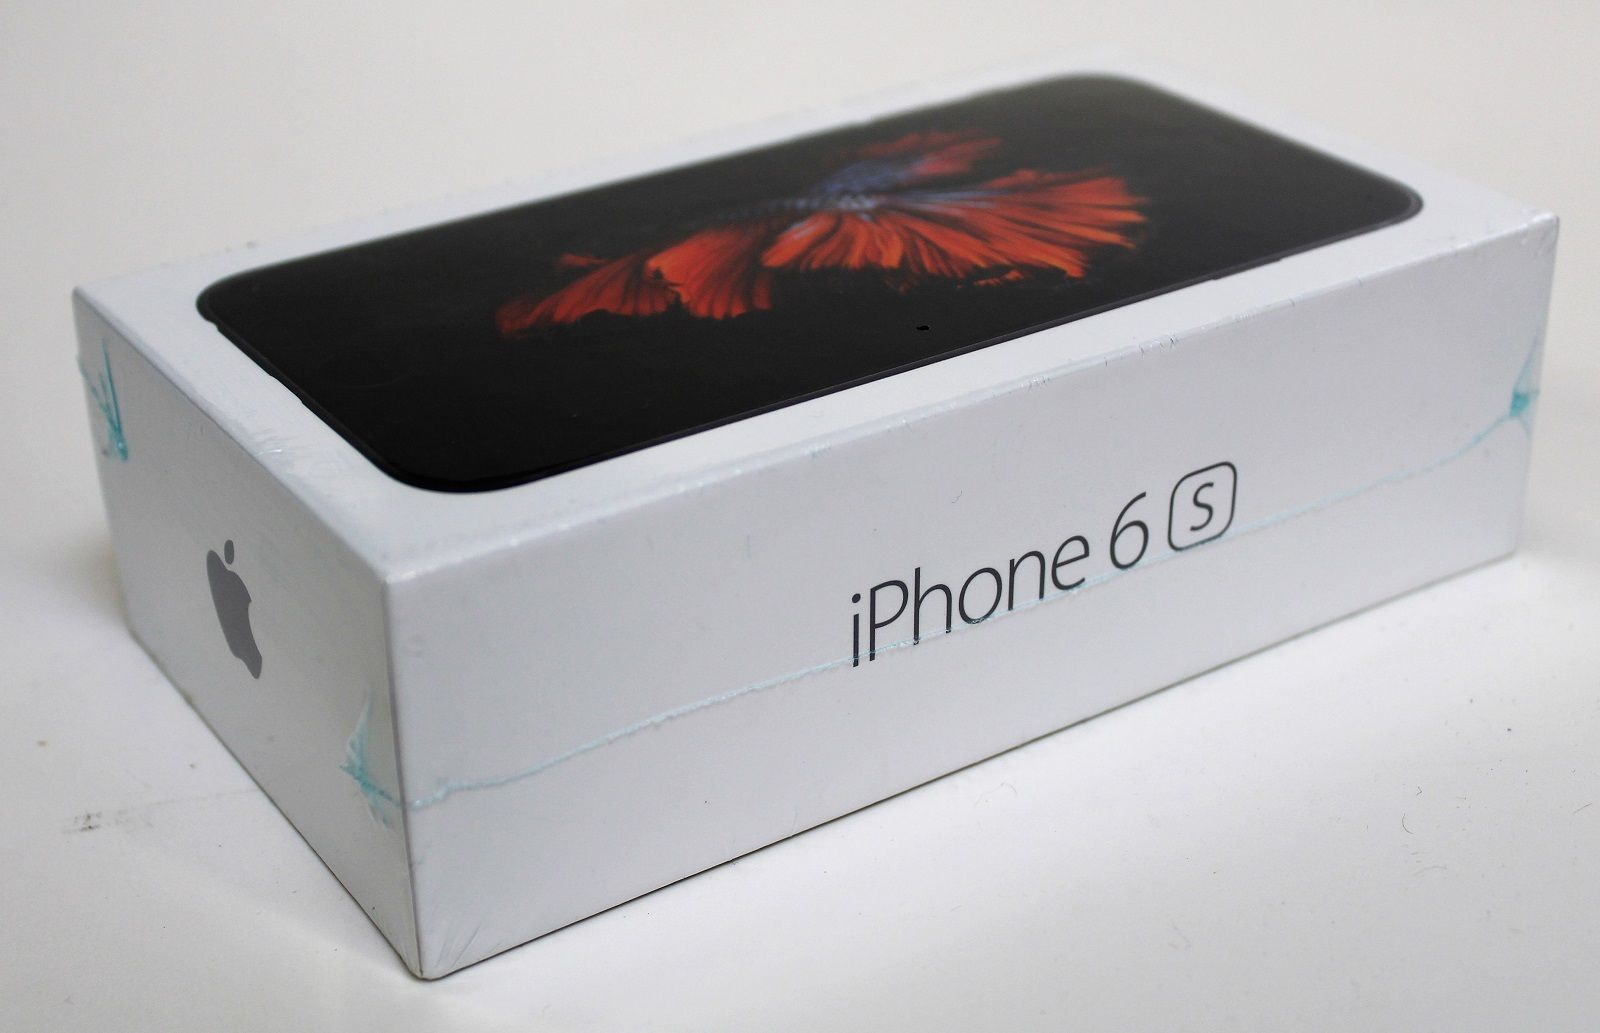 Apple iPhone 6s - 32GB - Space Gray (Unlocked) A1633 (GSM) Brand New in Box